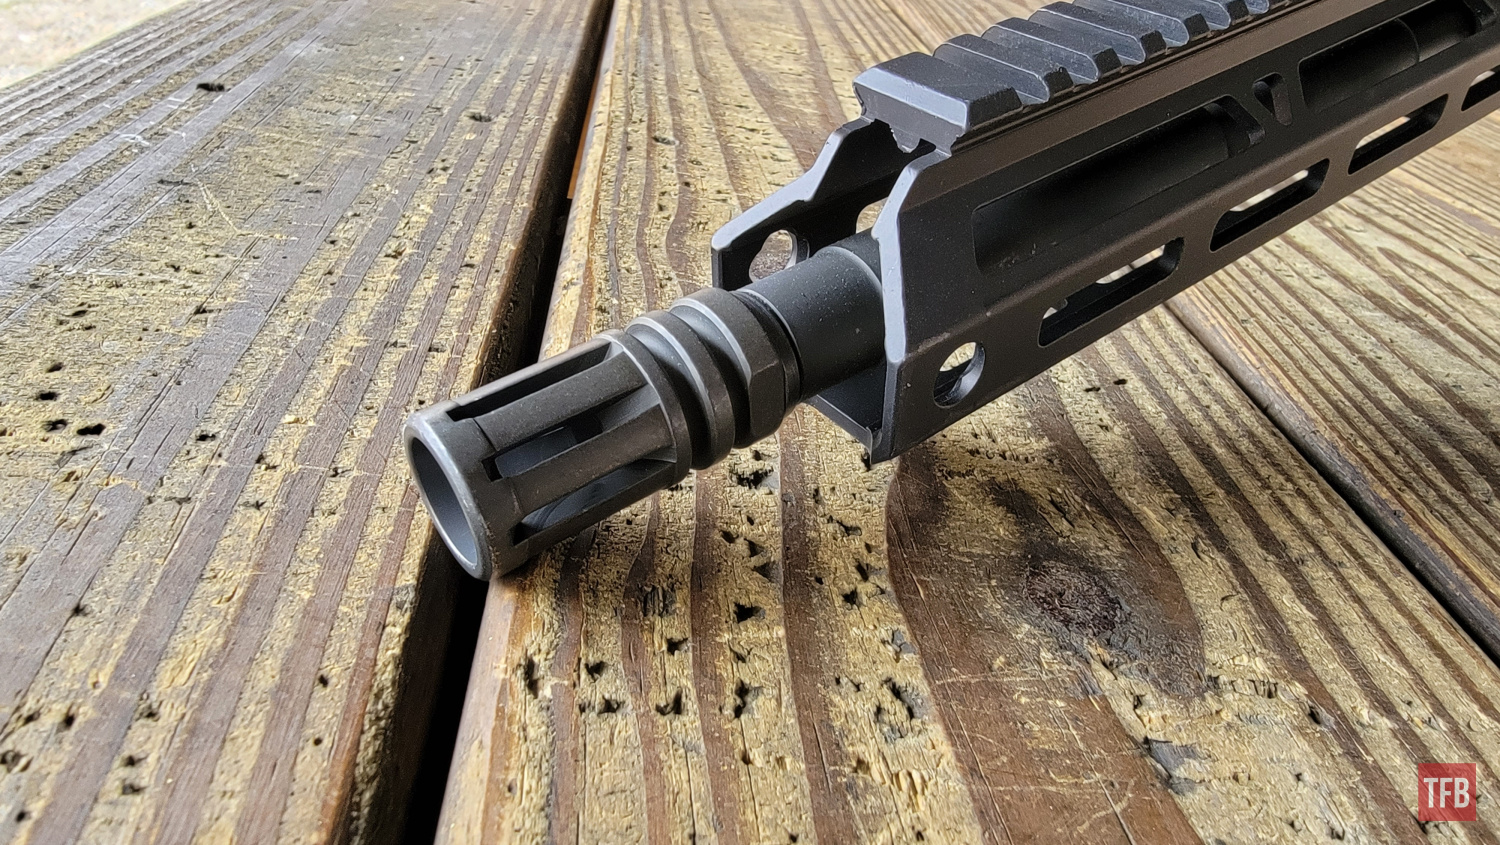 TFB REVIEW: Bear Creek Arsenal 16-inch Complete Upper Receiver